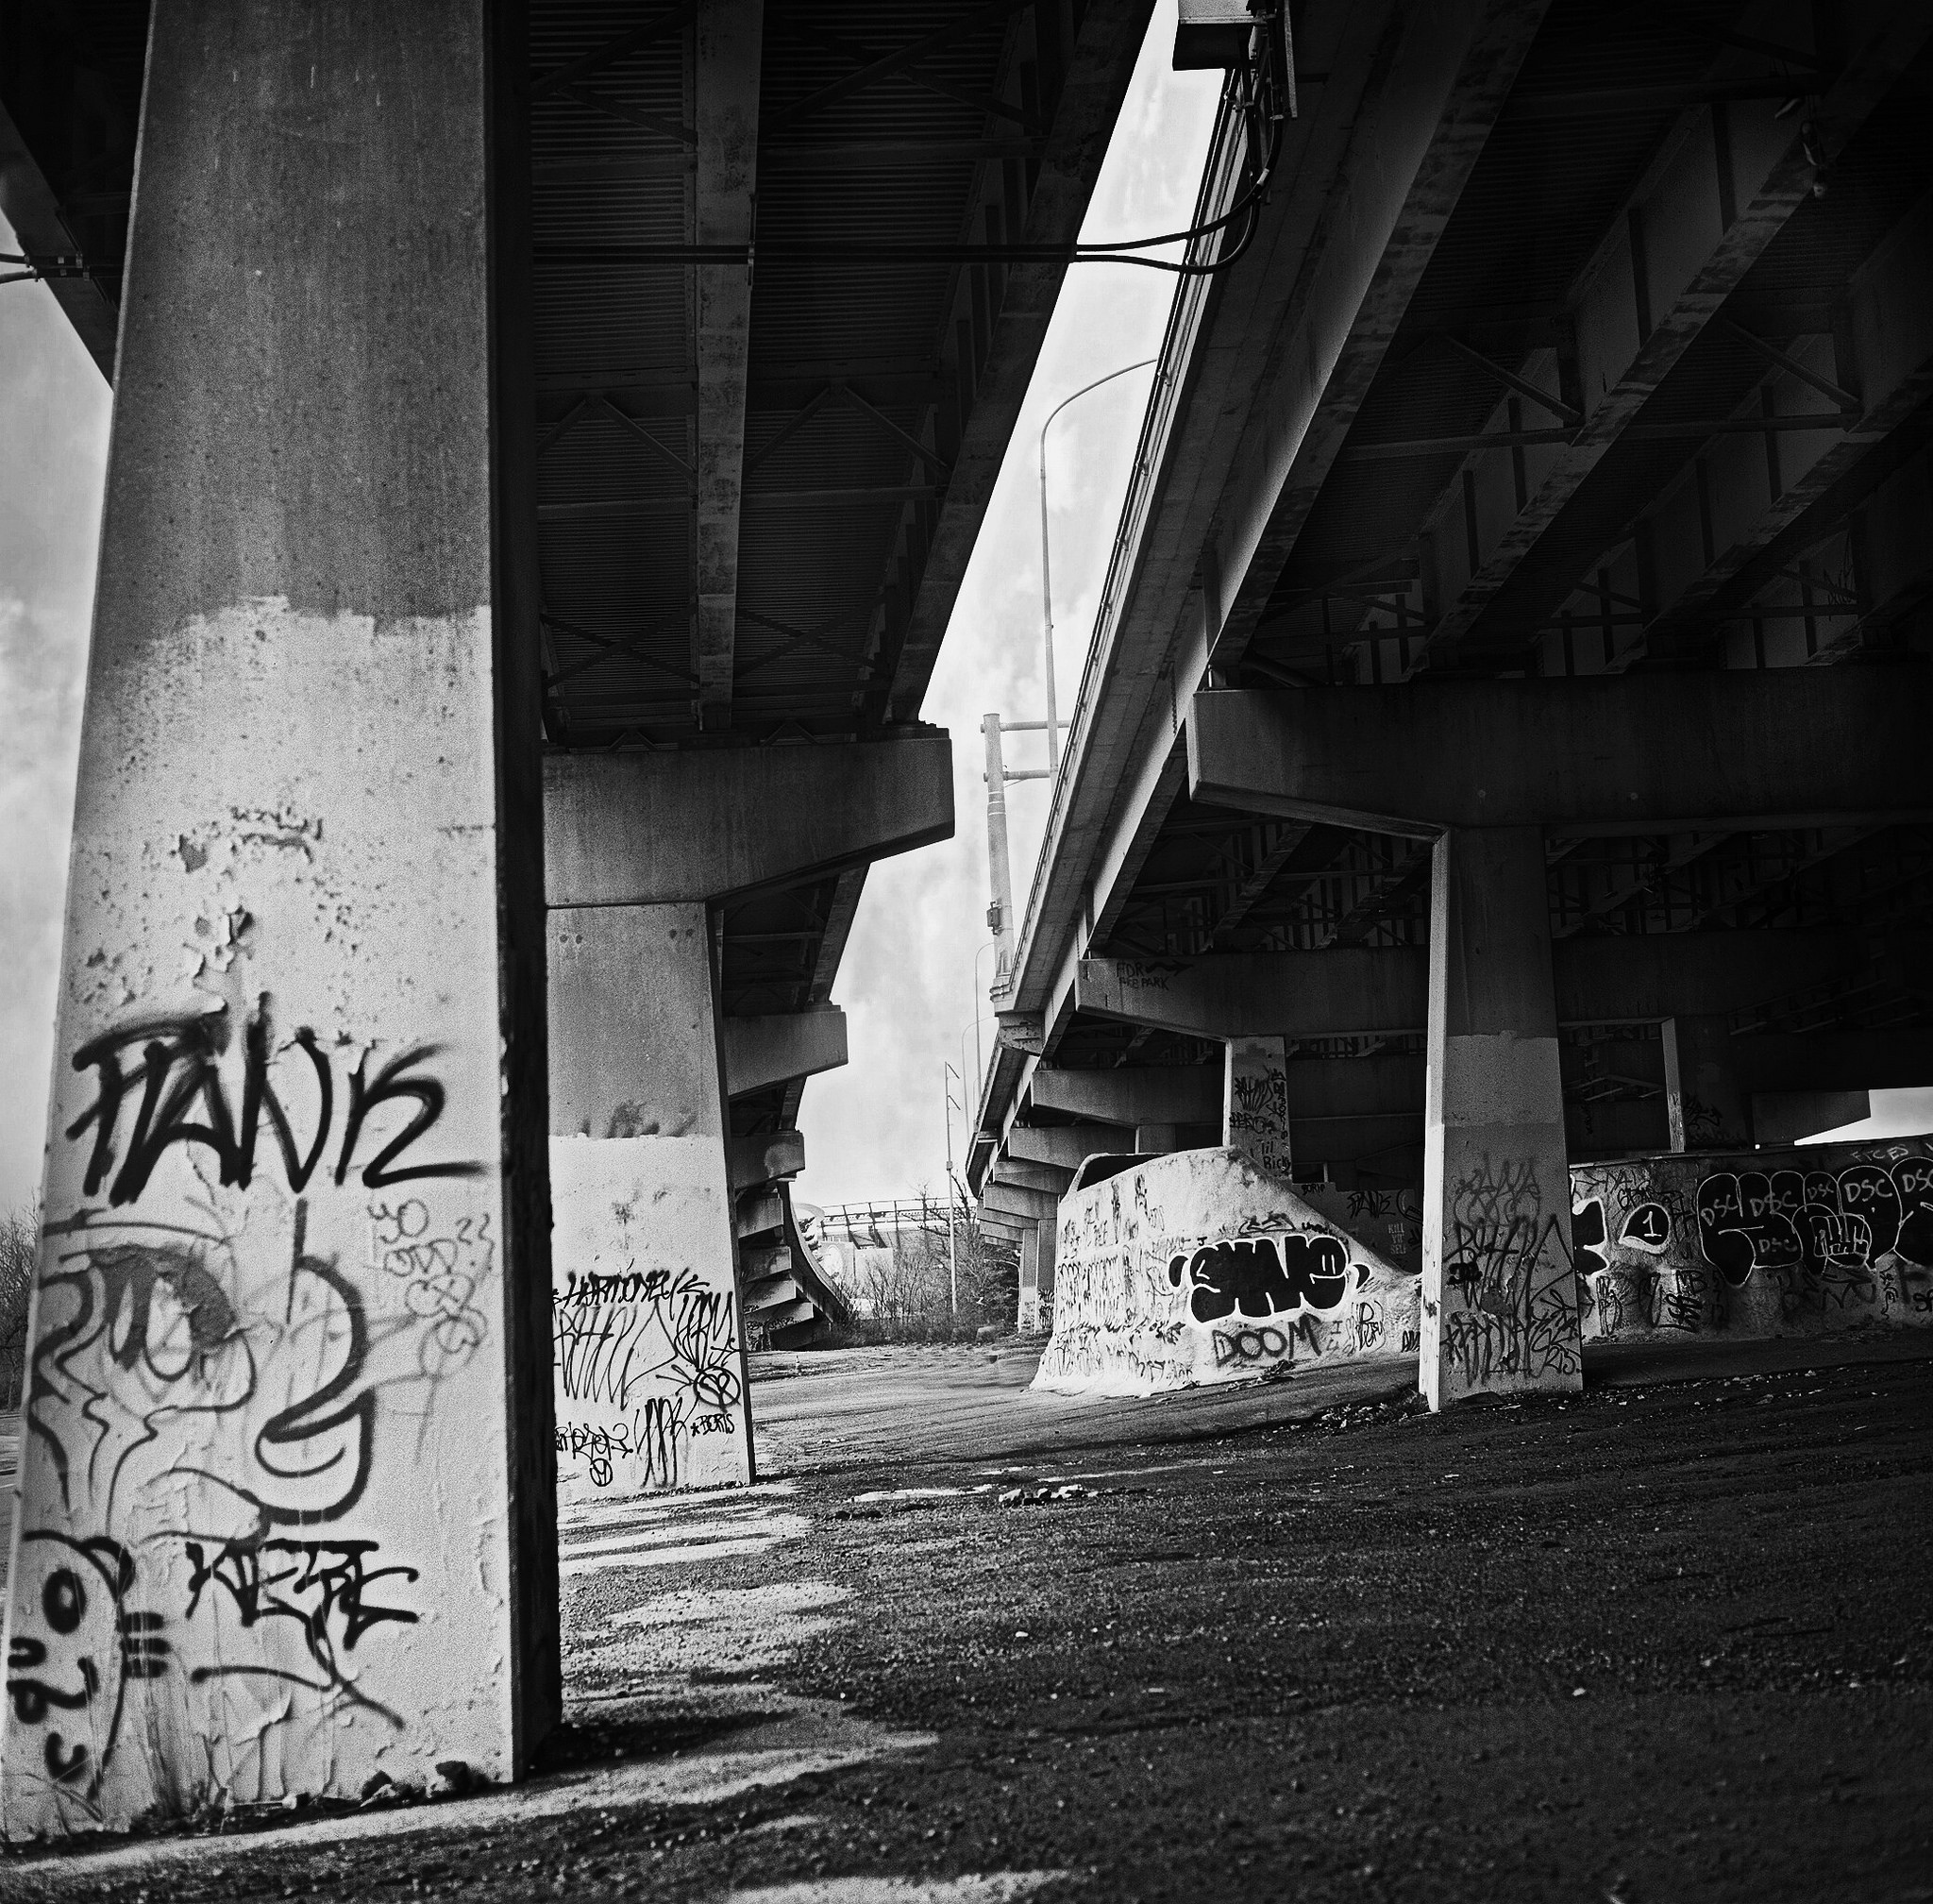 Under I-95 | David Swift, EOTS Flickr Group